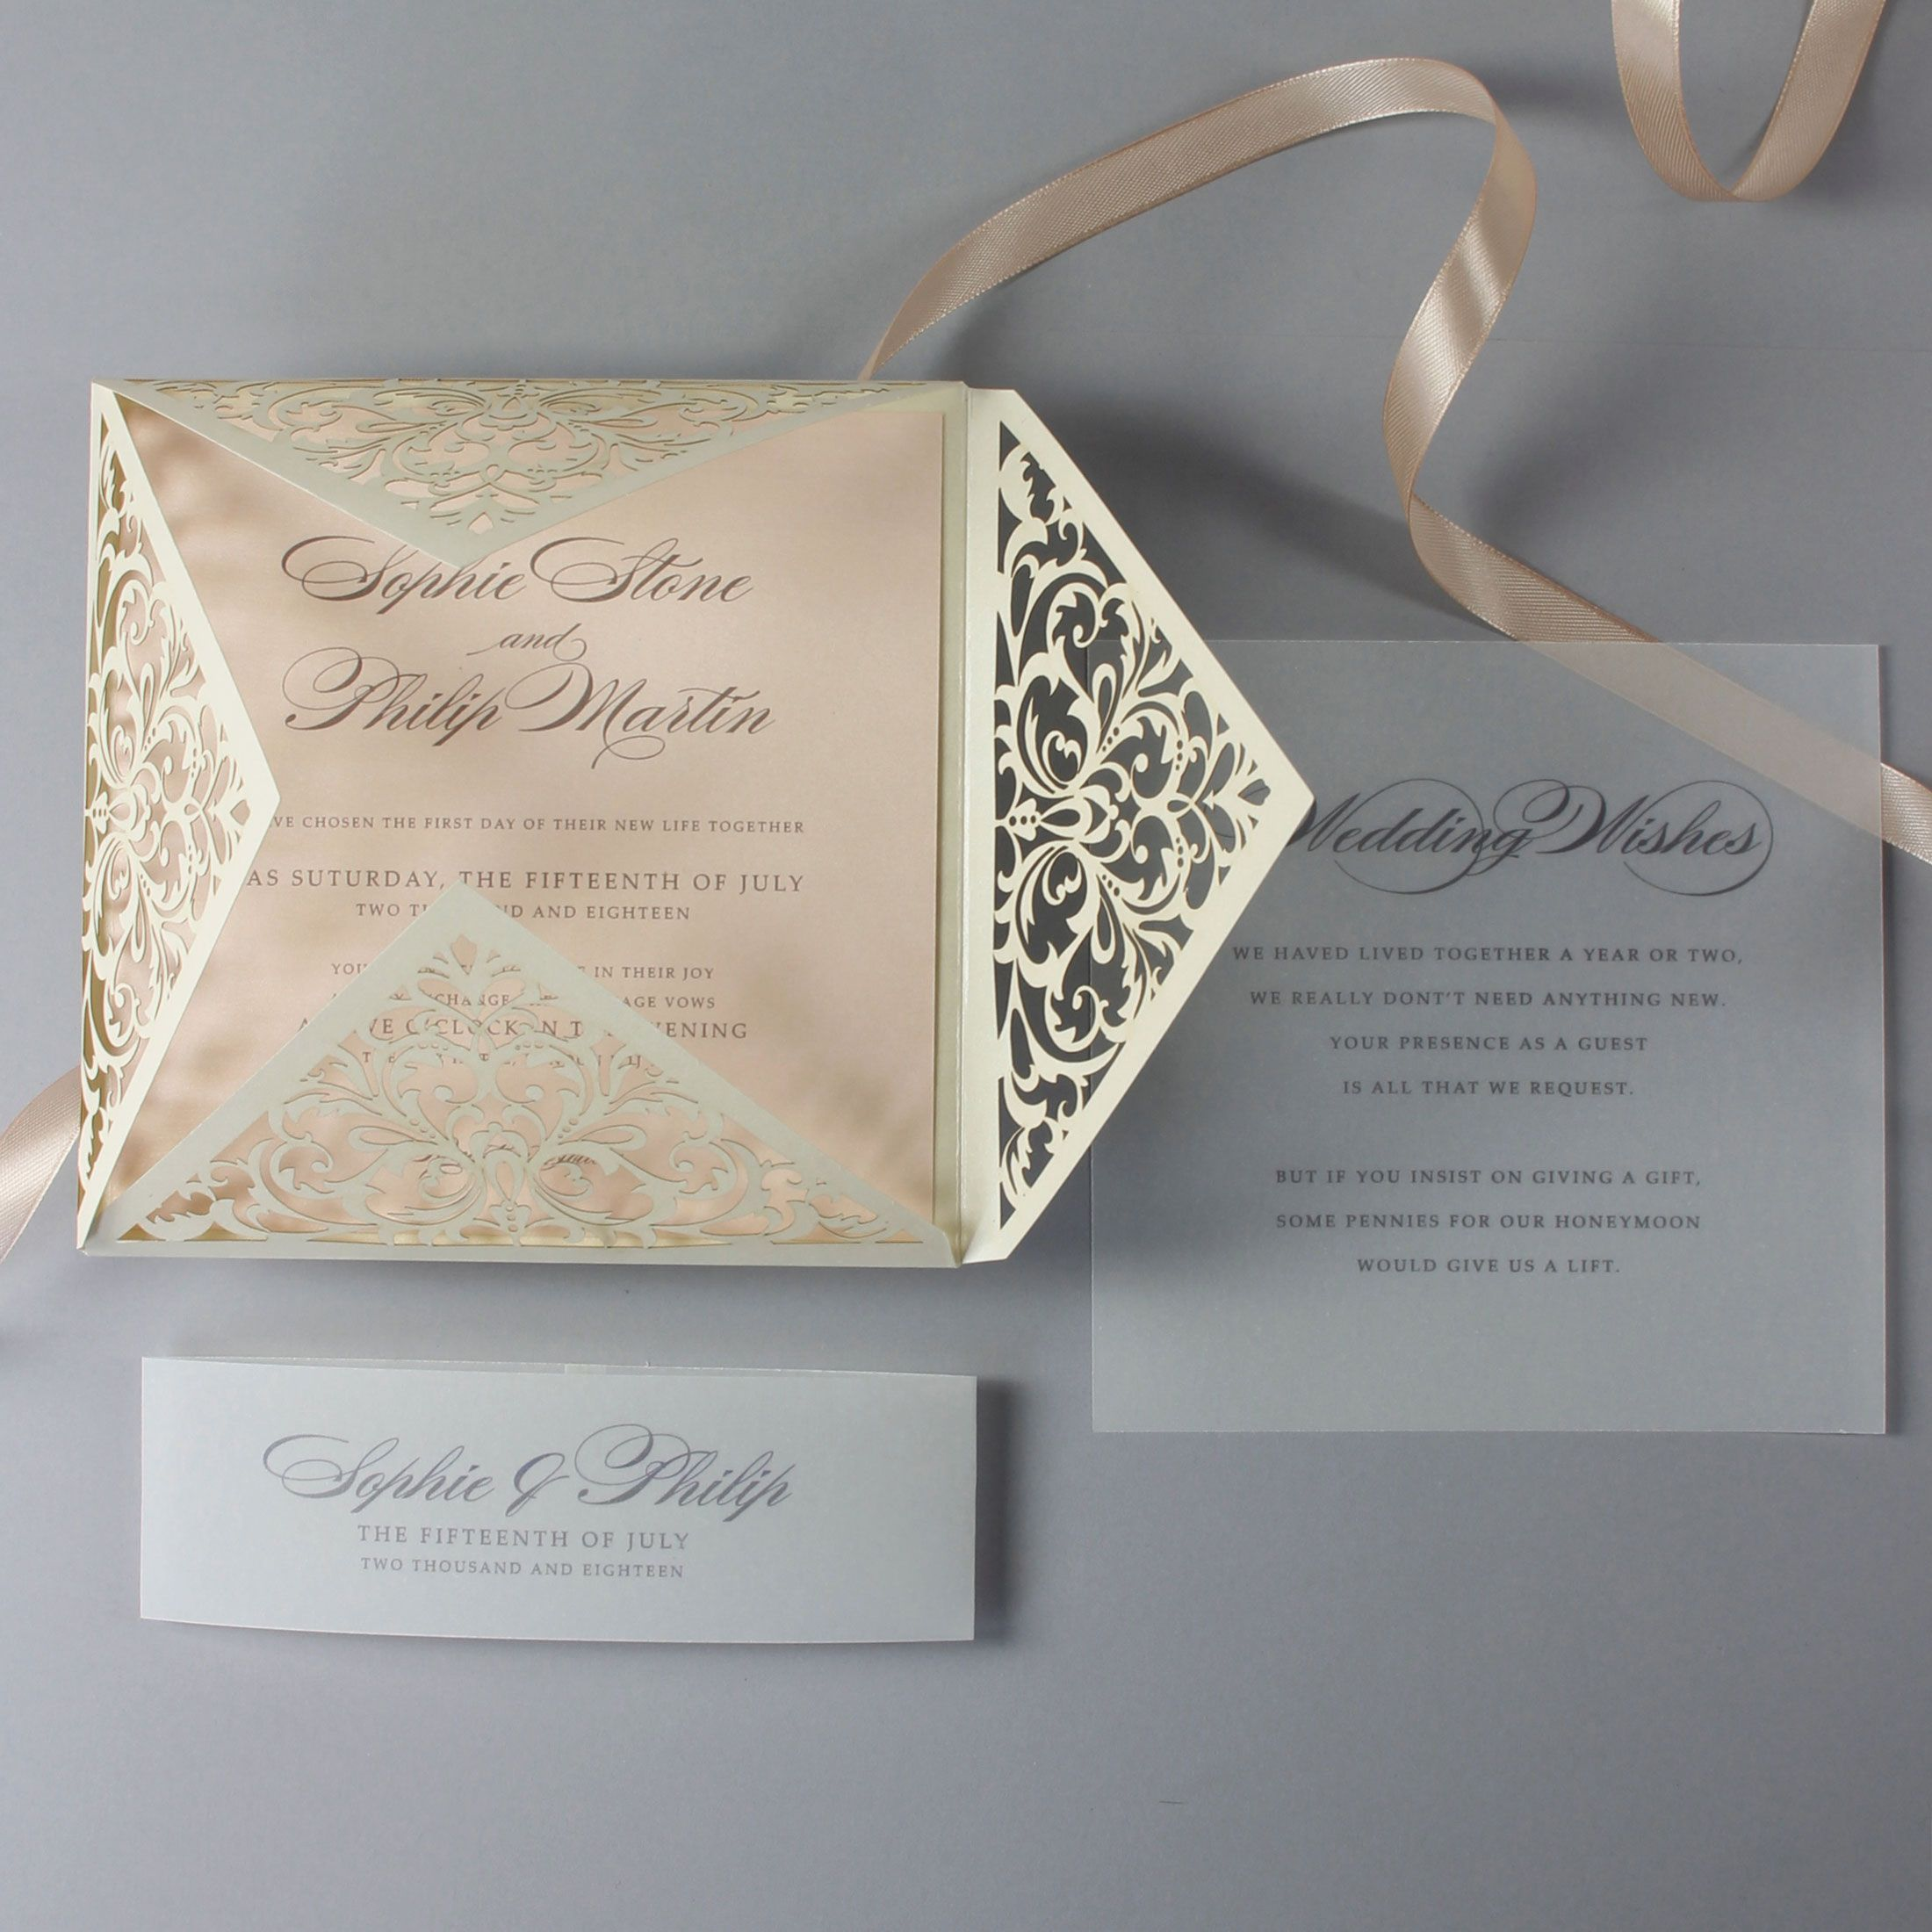 handmade wedding cards ireland%0A Champagne Laser Cut Lace Pocketfold Wedding Invitation   Wedding Wish Set